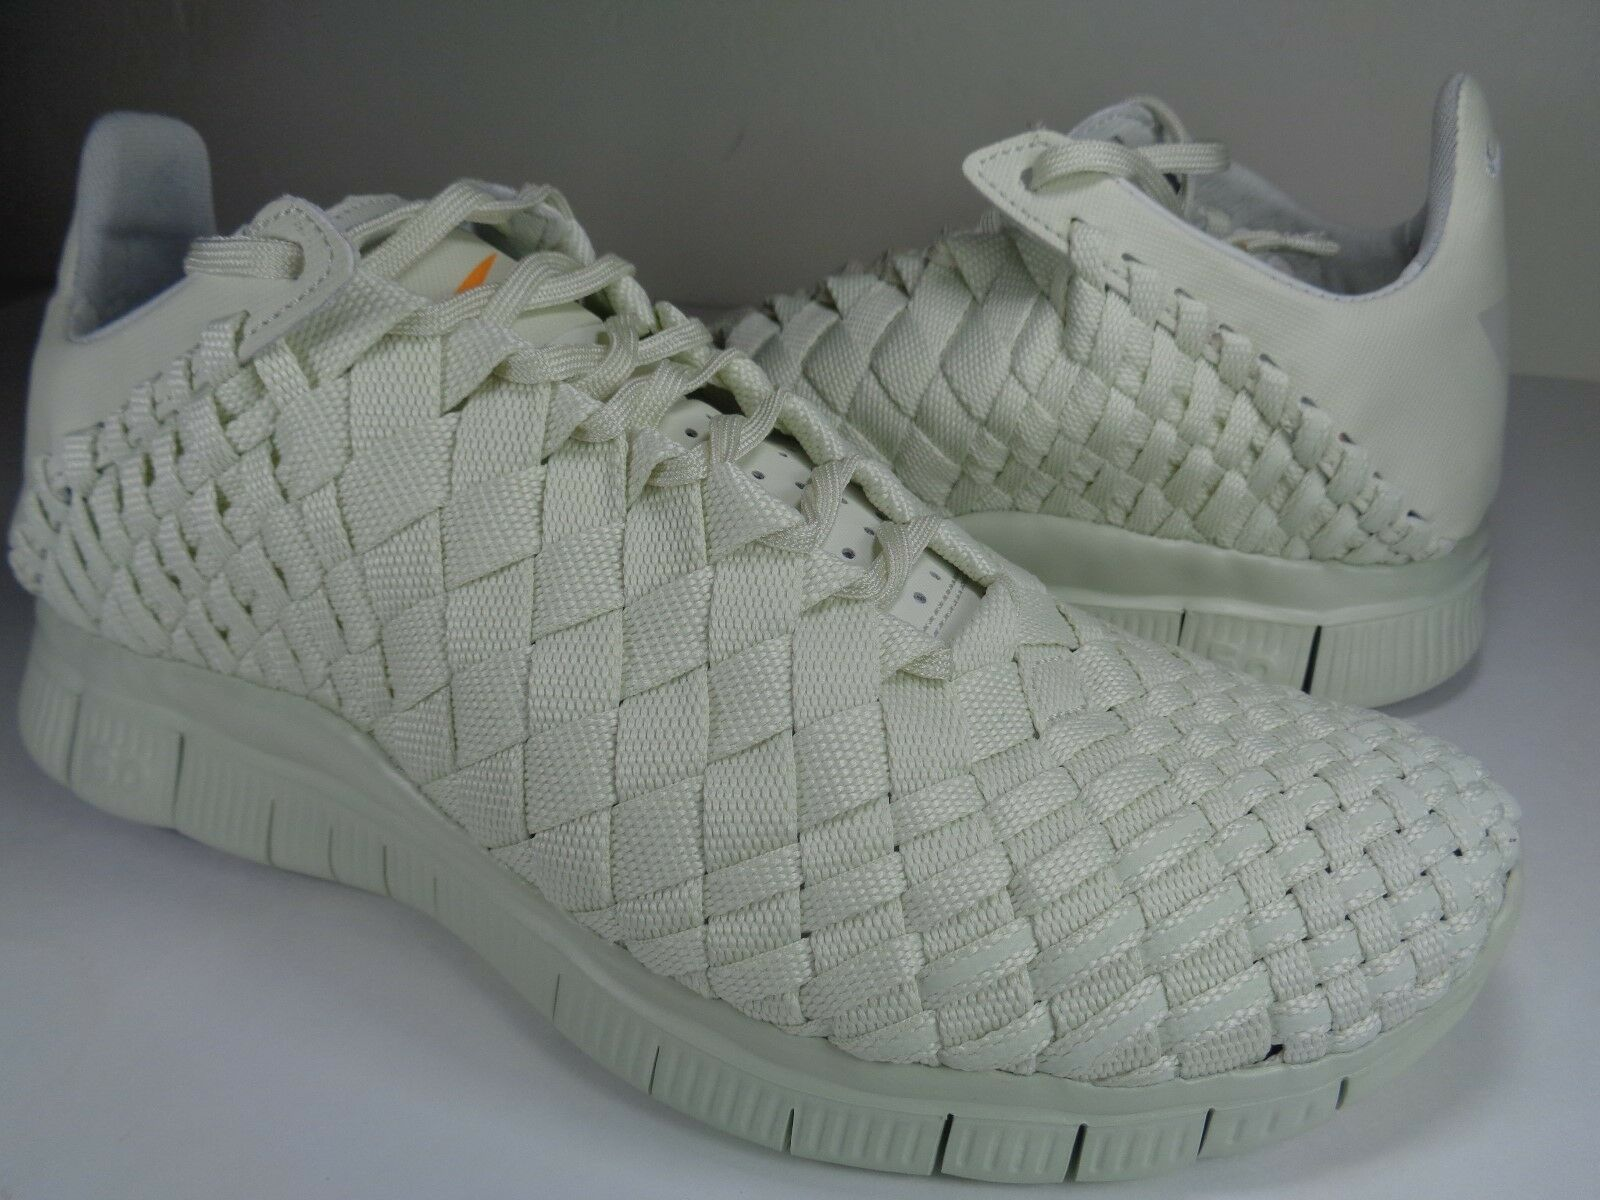 Nike Nike Nike Free Inneva Woven Tech SP Sea Glass White SZ 5.5 Womens 7 (705797-008) af5c70